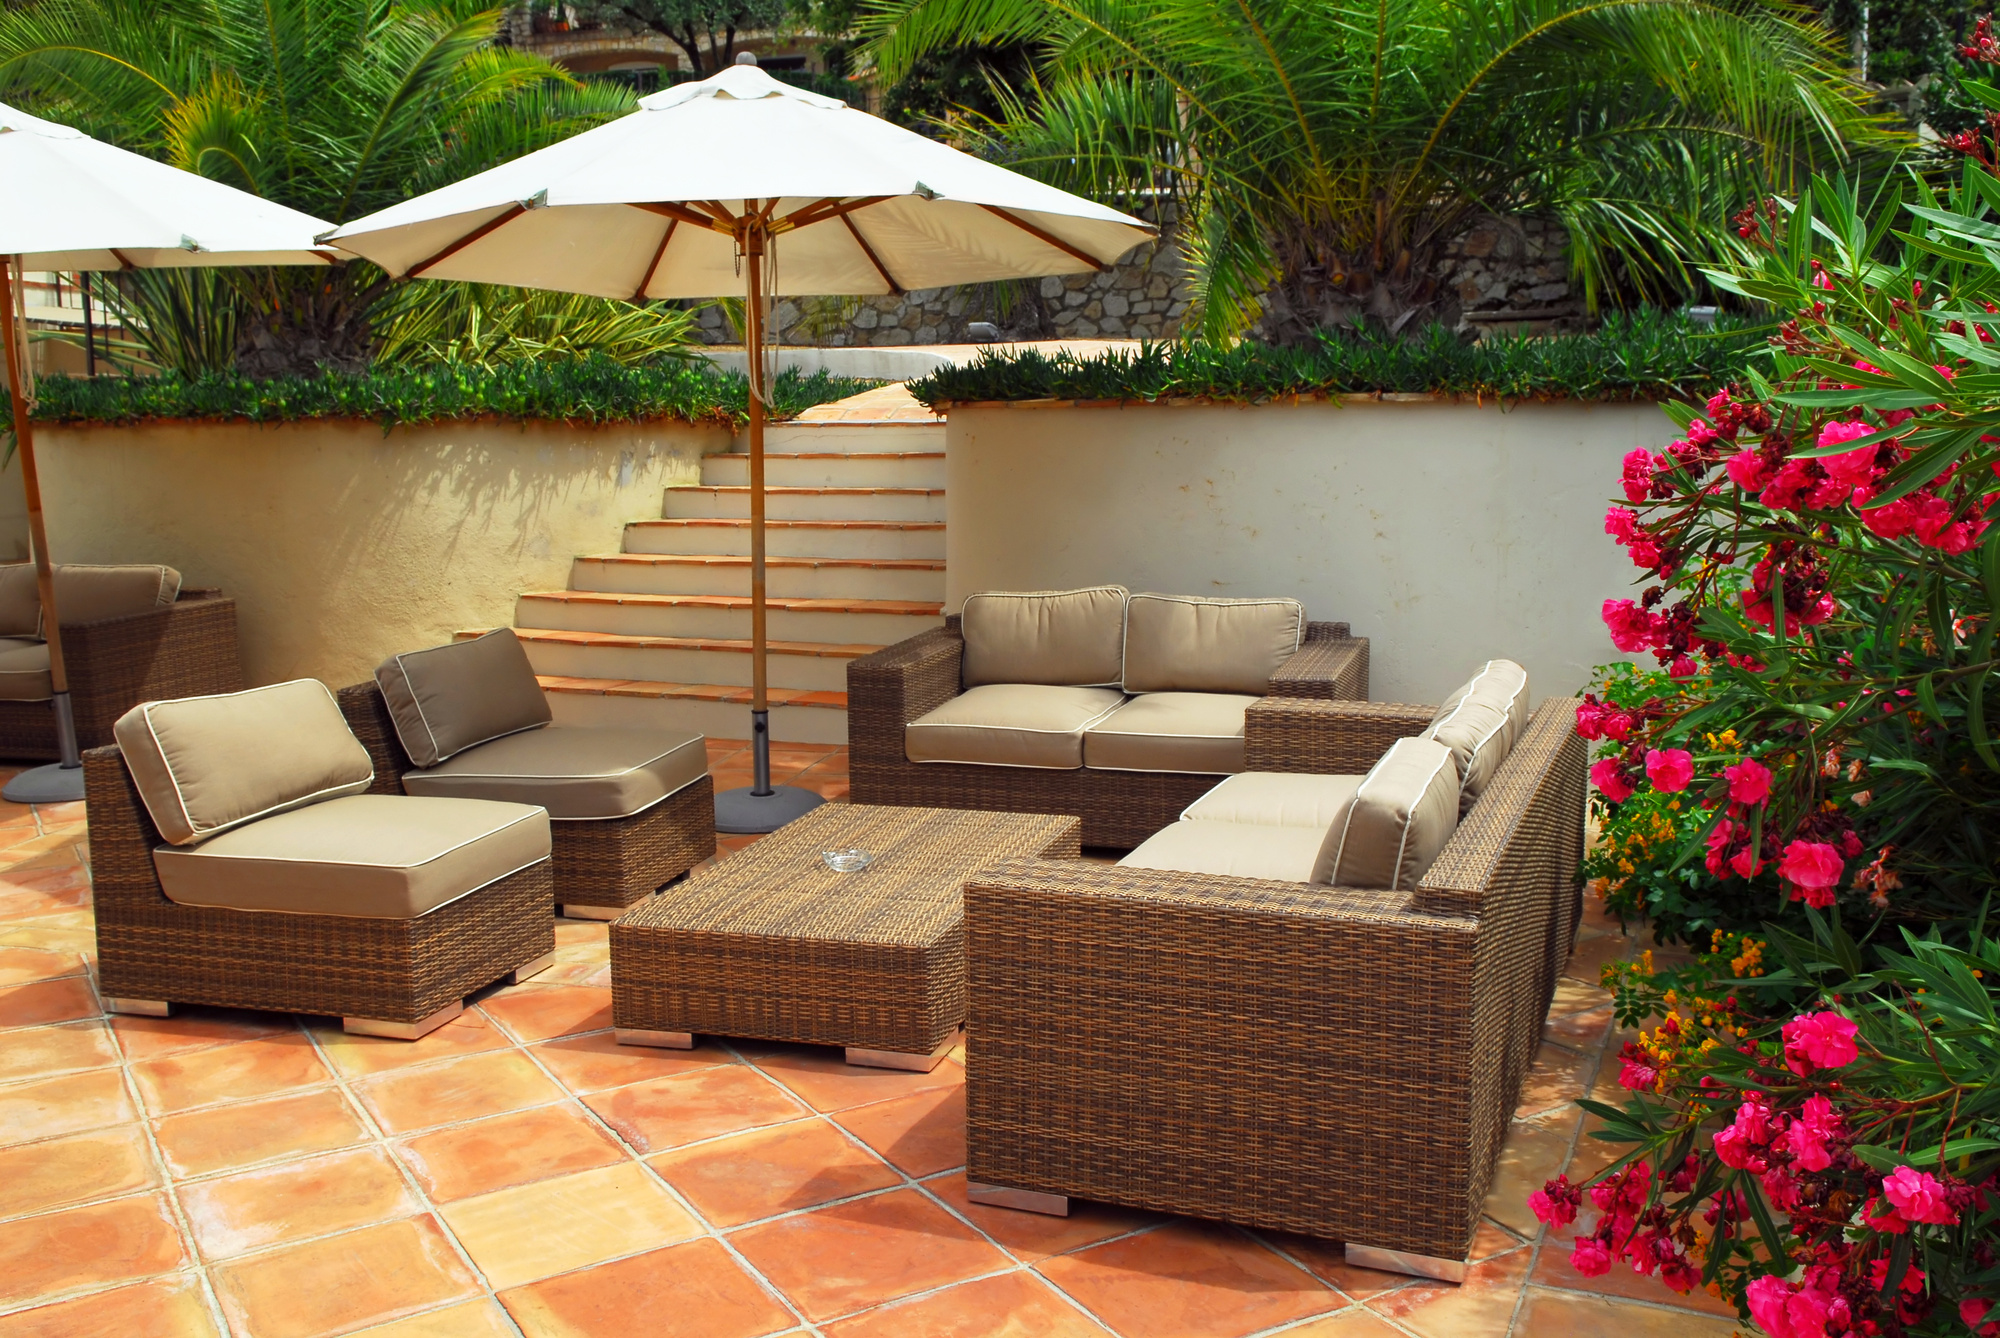 10 patio decorating ideas for the summer interior design - Home interior decoration ideas ...